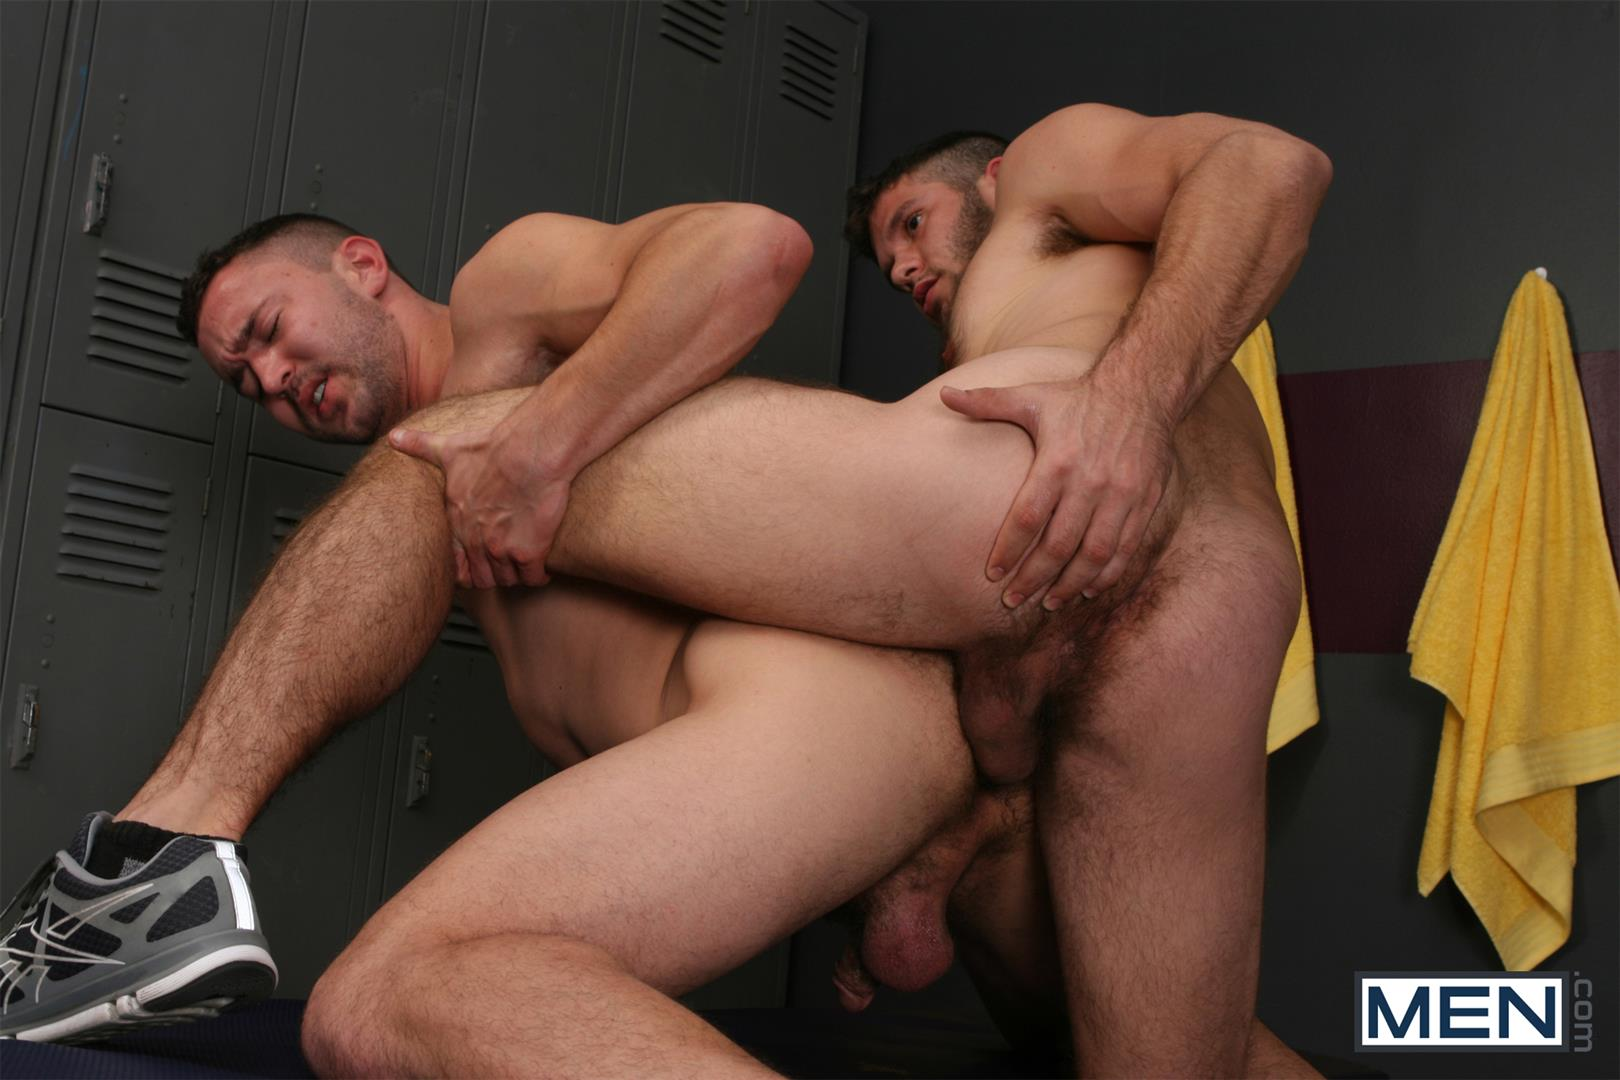 Men-Drill-My-Hole-Colt-Rivers-and-Jimmy-Fanz-Muscle-Jocks-Fucking-In-The-Locker-Room-Amateur-Gay-Porn-19 Hairy Ass Muscle Jocks Fucking In The Locker Room